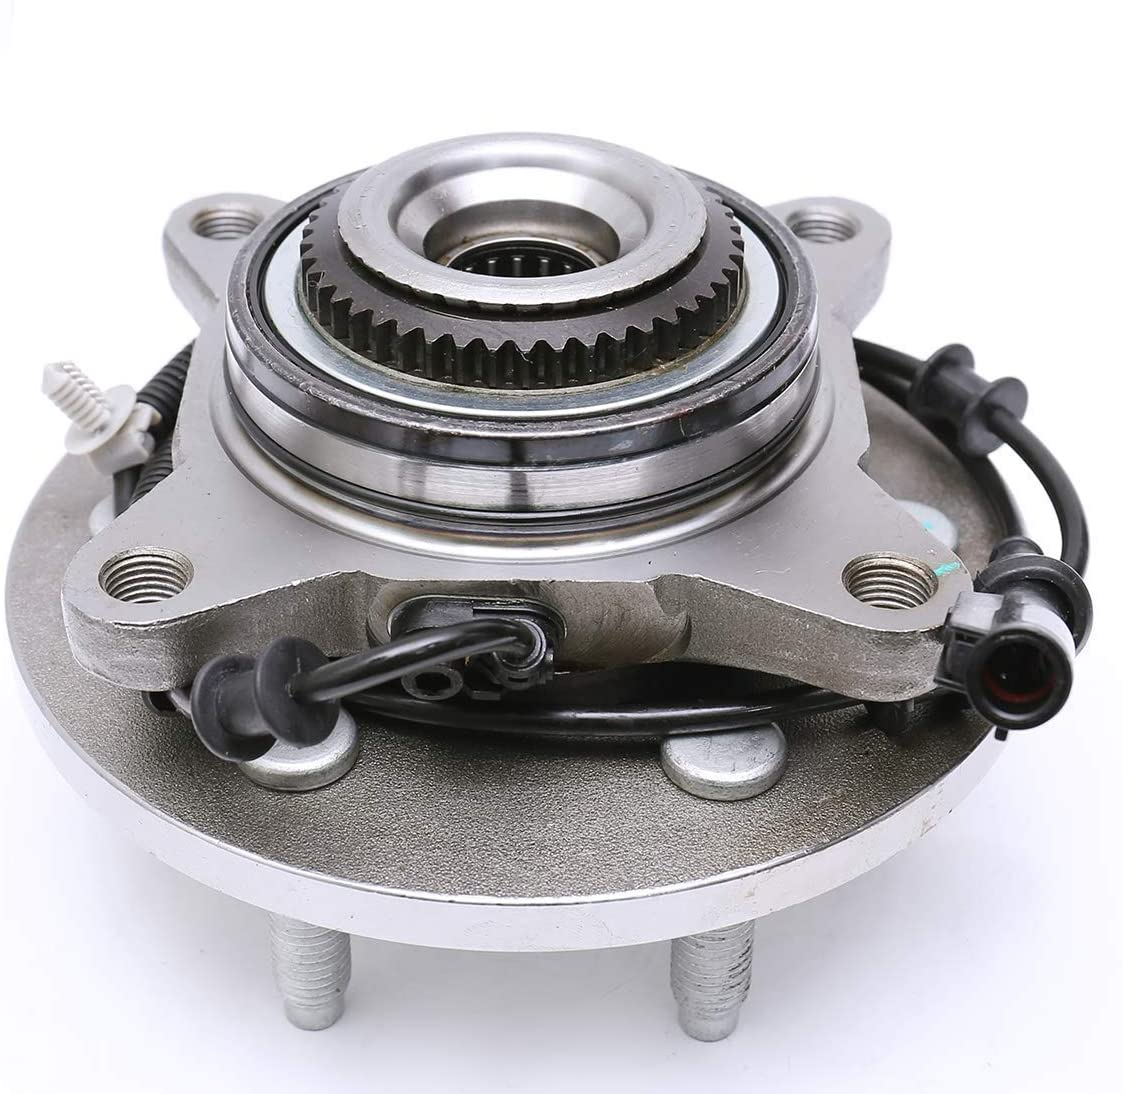 Qiilu 515079 Front Wheel Hub Bearing Assembly with 6 lugs W/ABS 4 Mating Bolt Holes Fit for Ford F150 Truck and for Lincoln Mark LT 2006-2008